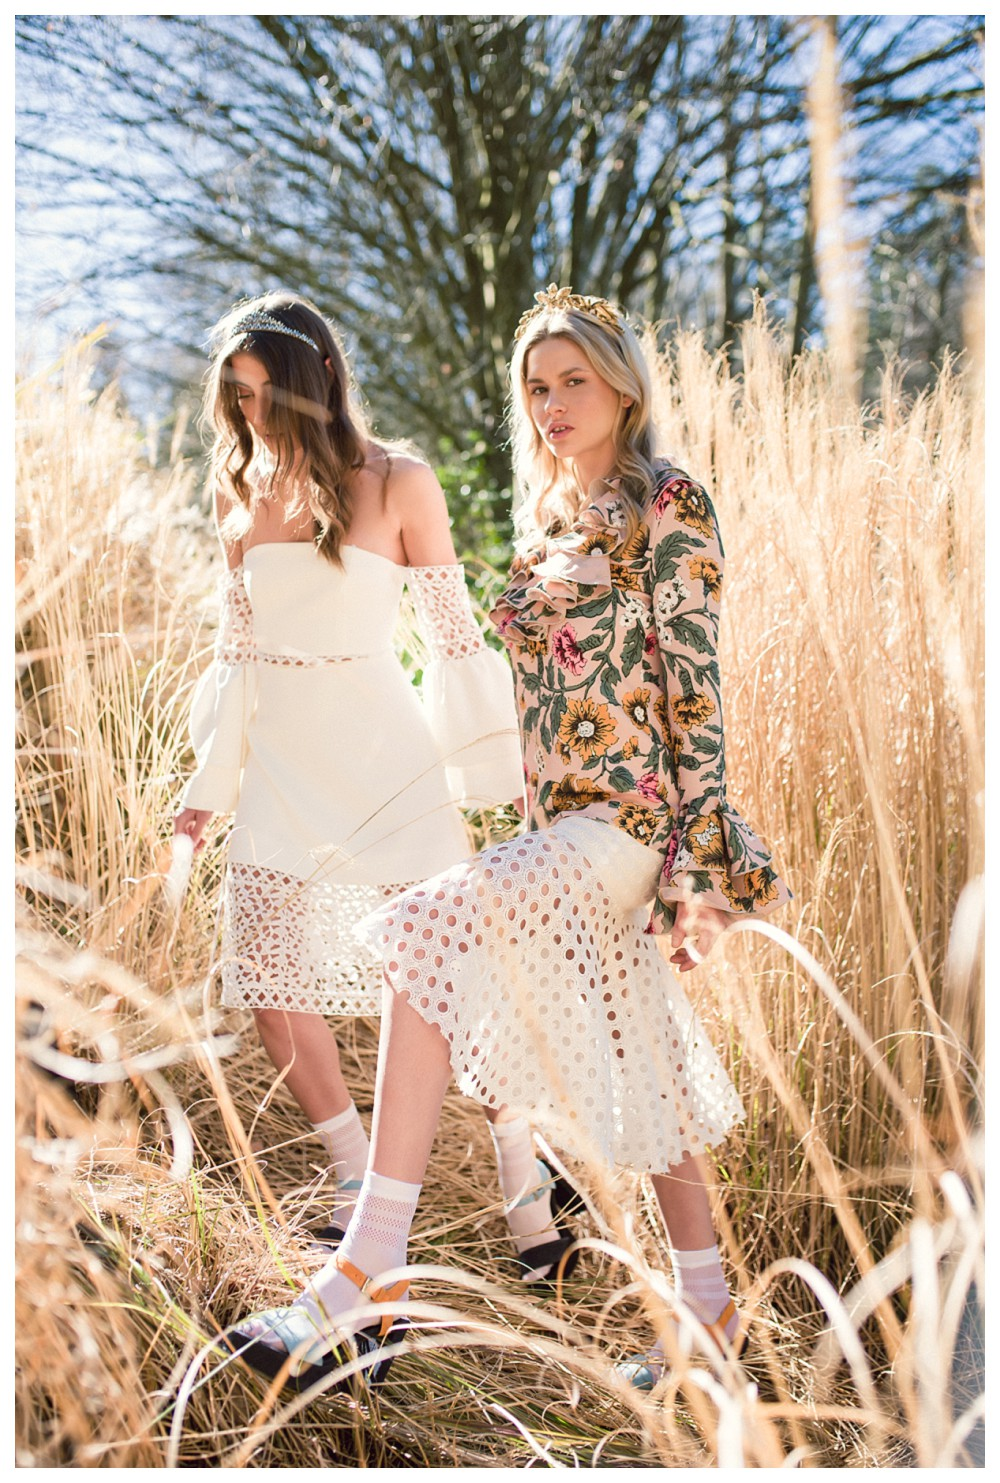 FASHION EDITORIAL: Spring Racing outfits ft. Voodoo Hosiery